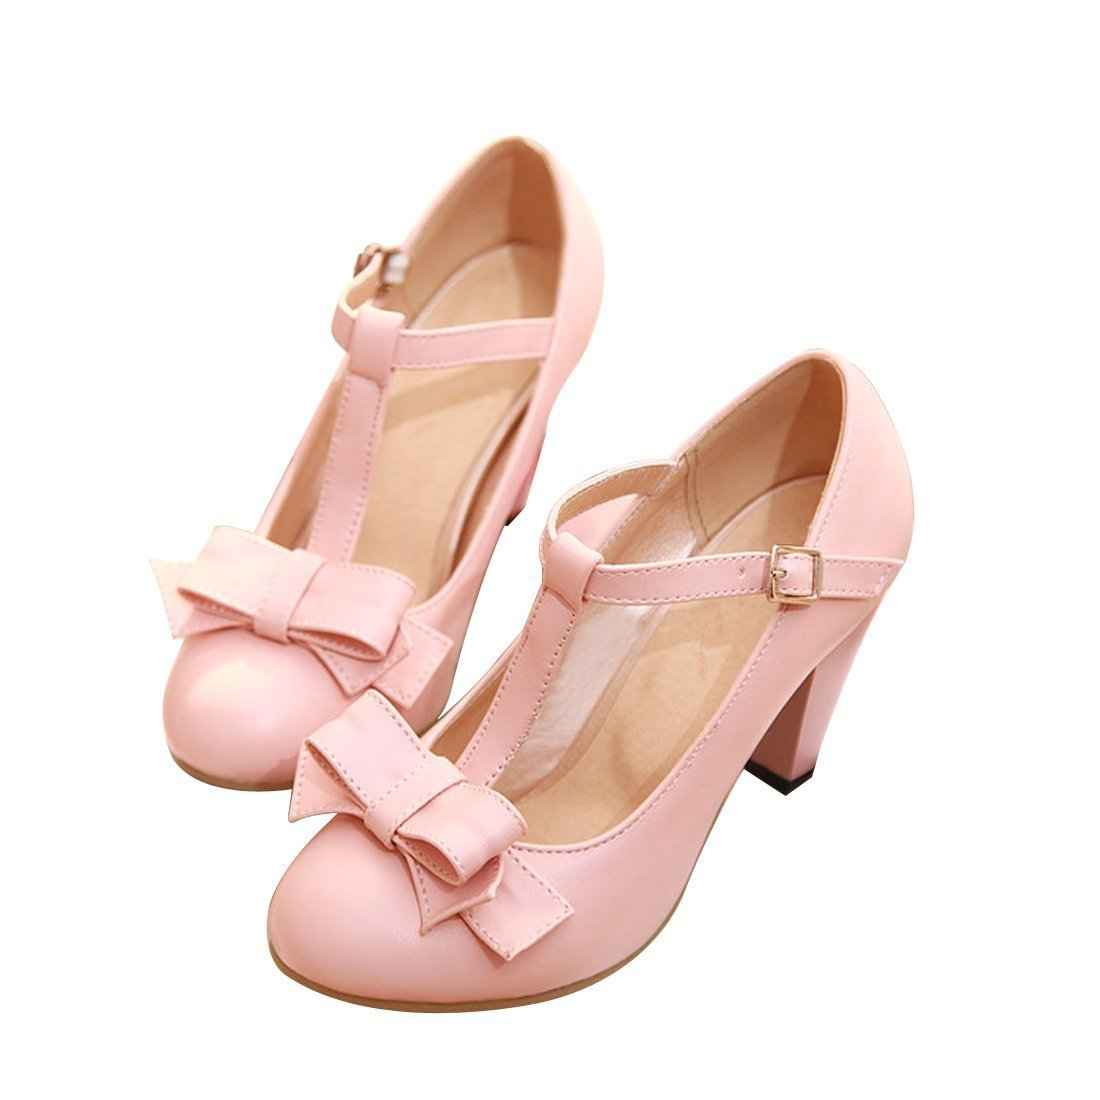 Susanny Women's Chic Sweet Round Toe T-Strap Bows Adorable Buckle High Cone Heel Mary Janes Dress Pumps